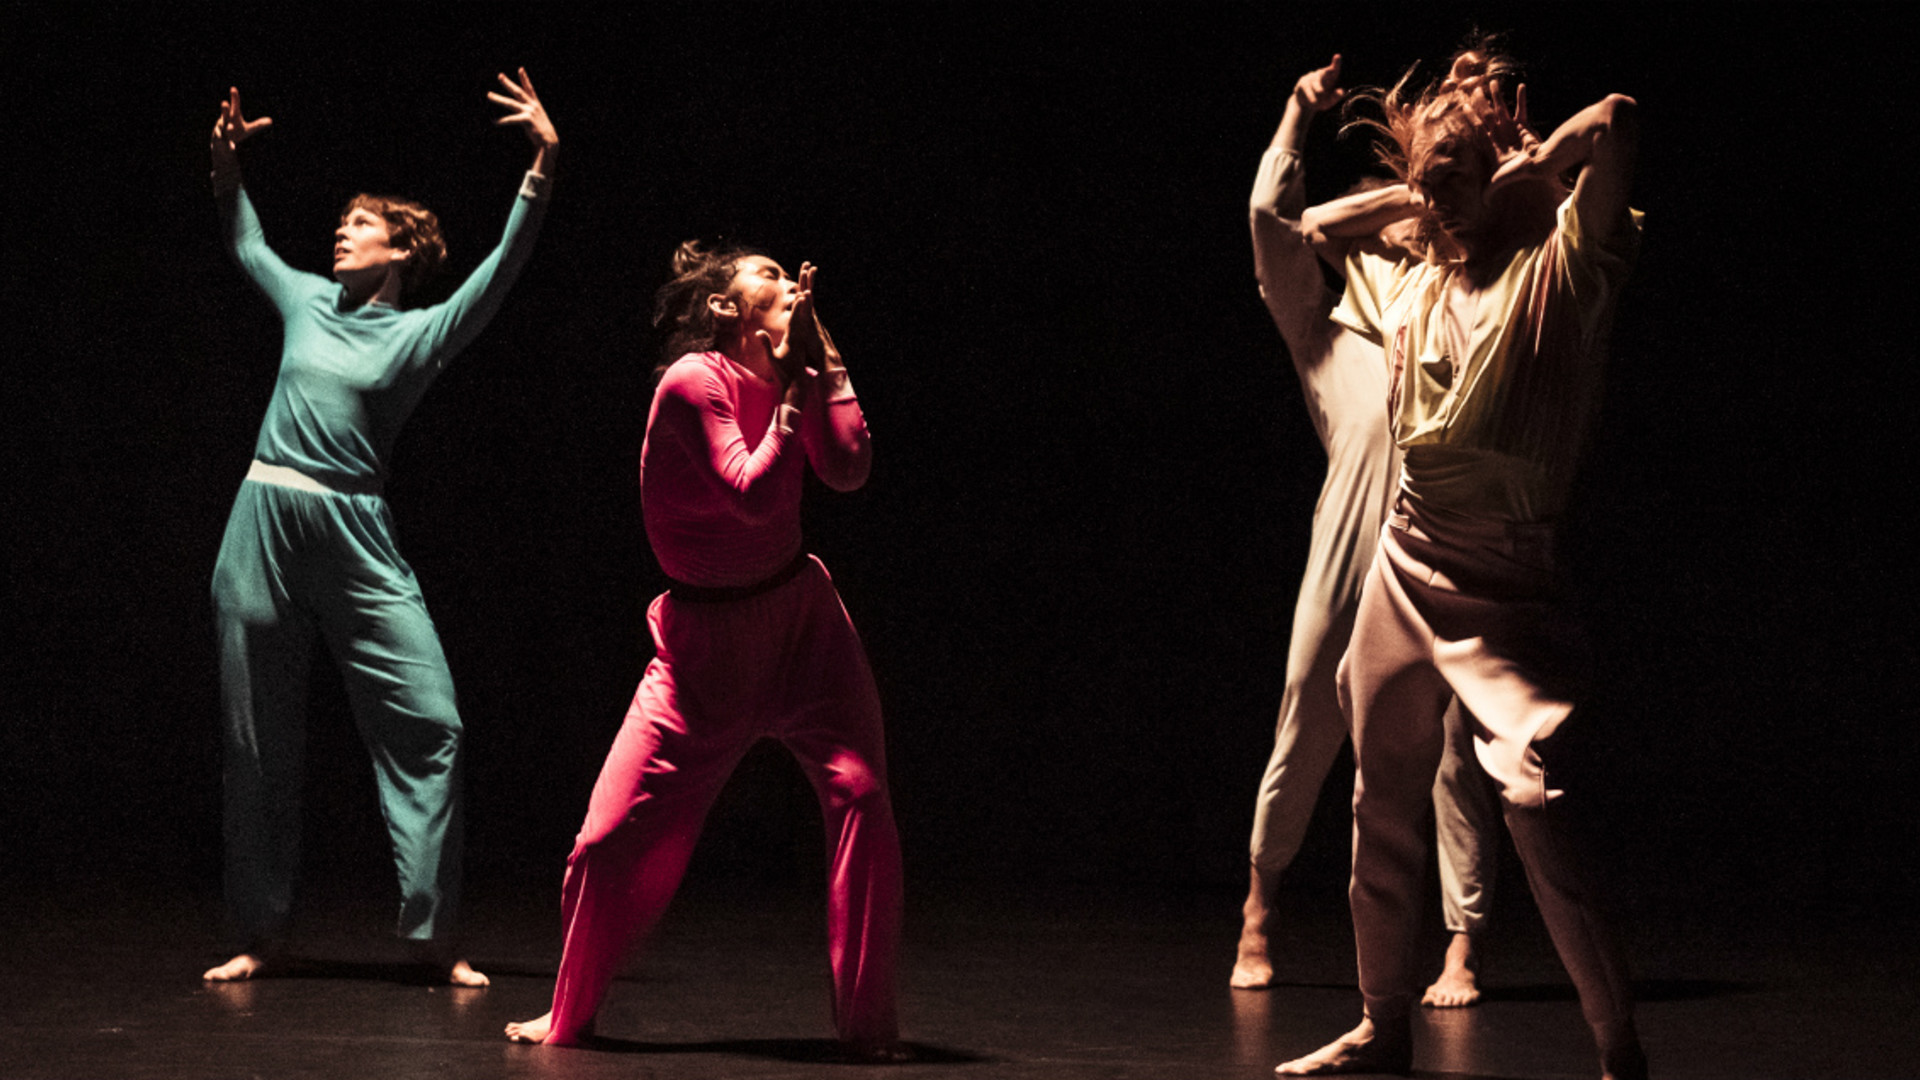 One dancer holds her arms above her head, another holds her hands over her mouth while two more stand to the side with their hands in the air.